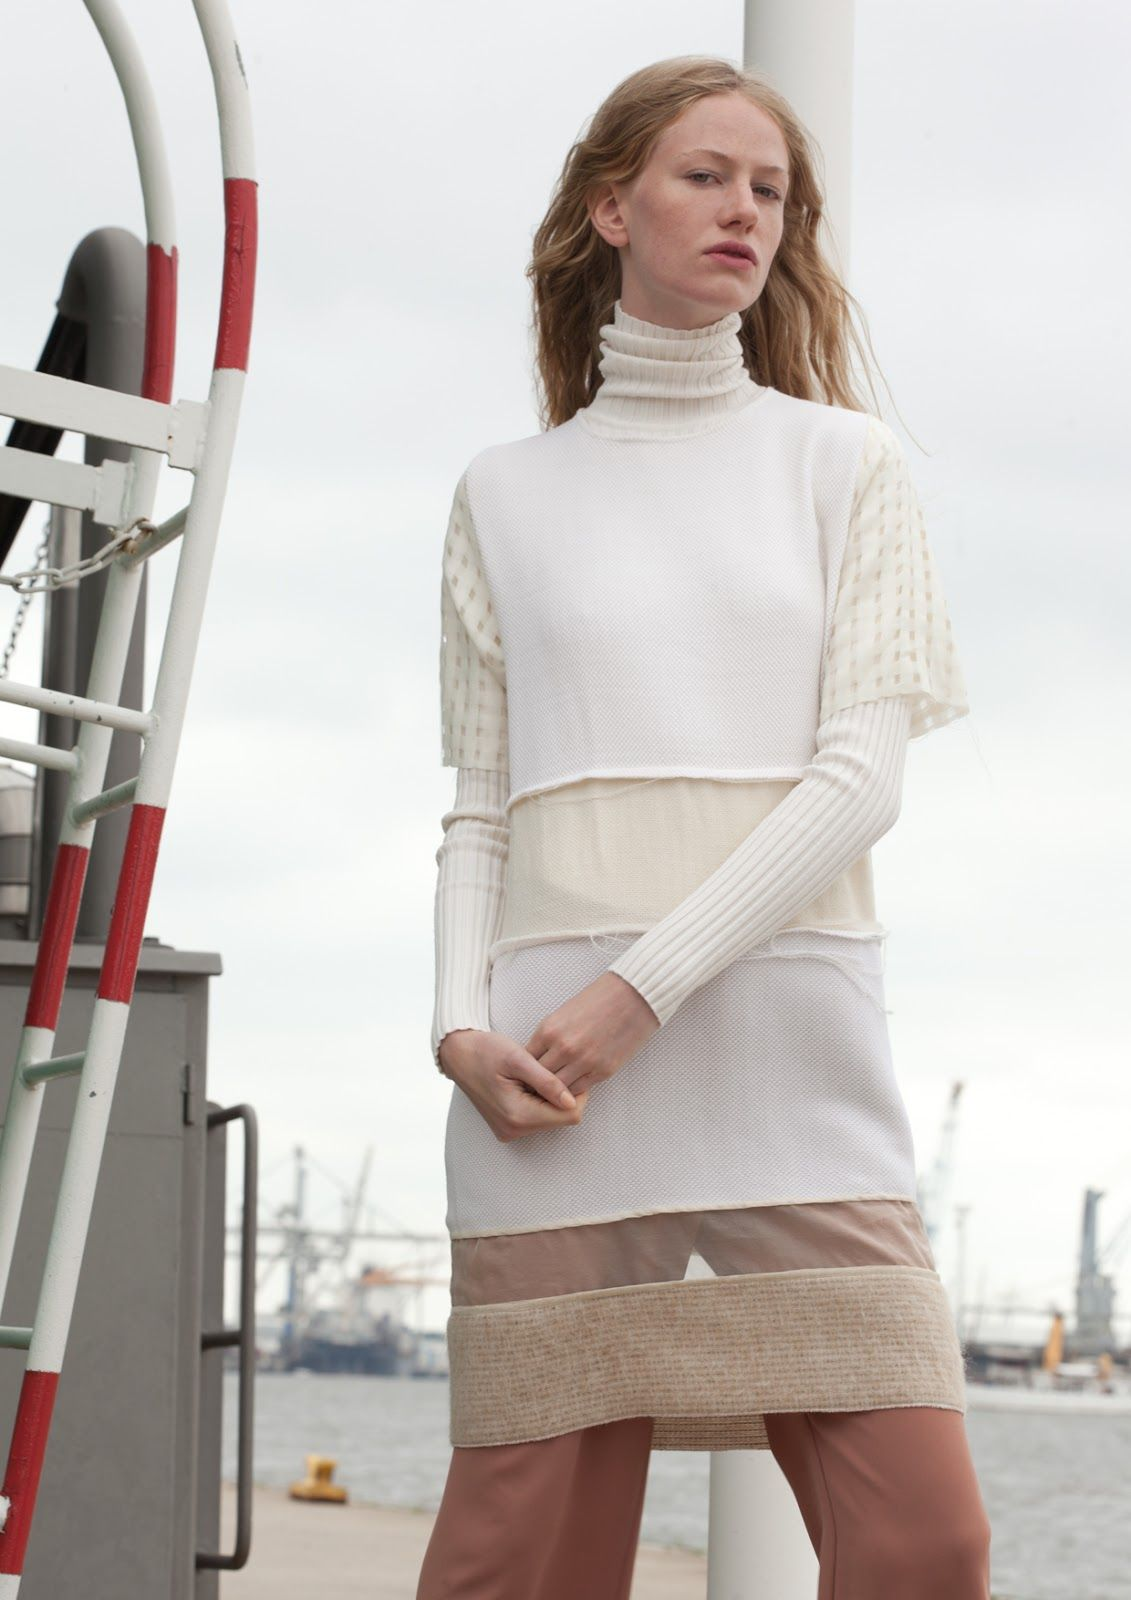 naemi schink by niclas heikkinen for grit autumn 2015   visual optimism; fashion editorials, shows, campaigns & more!